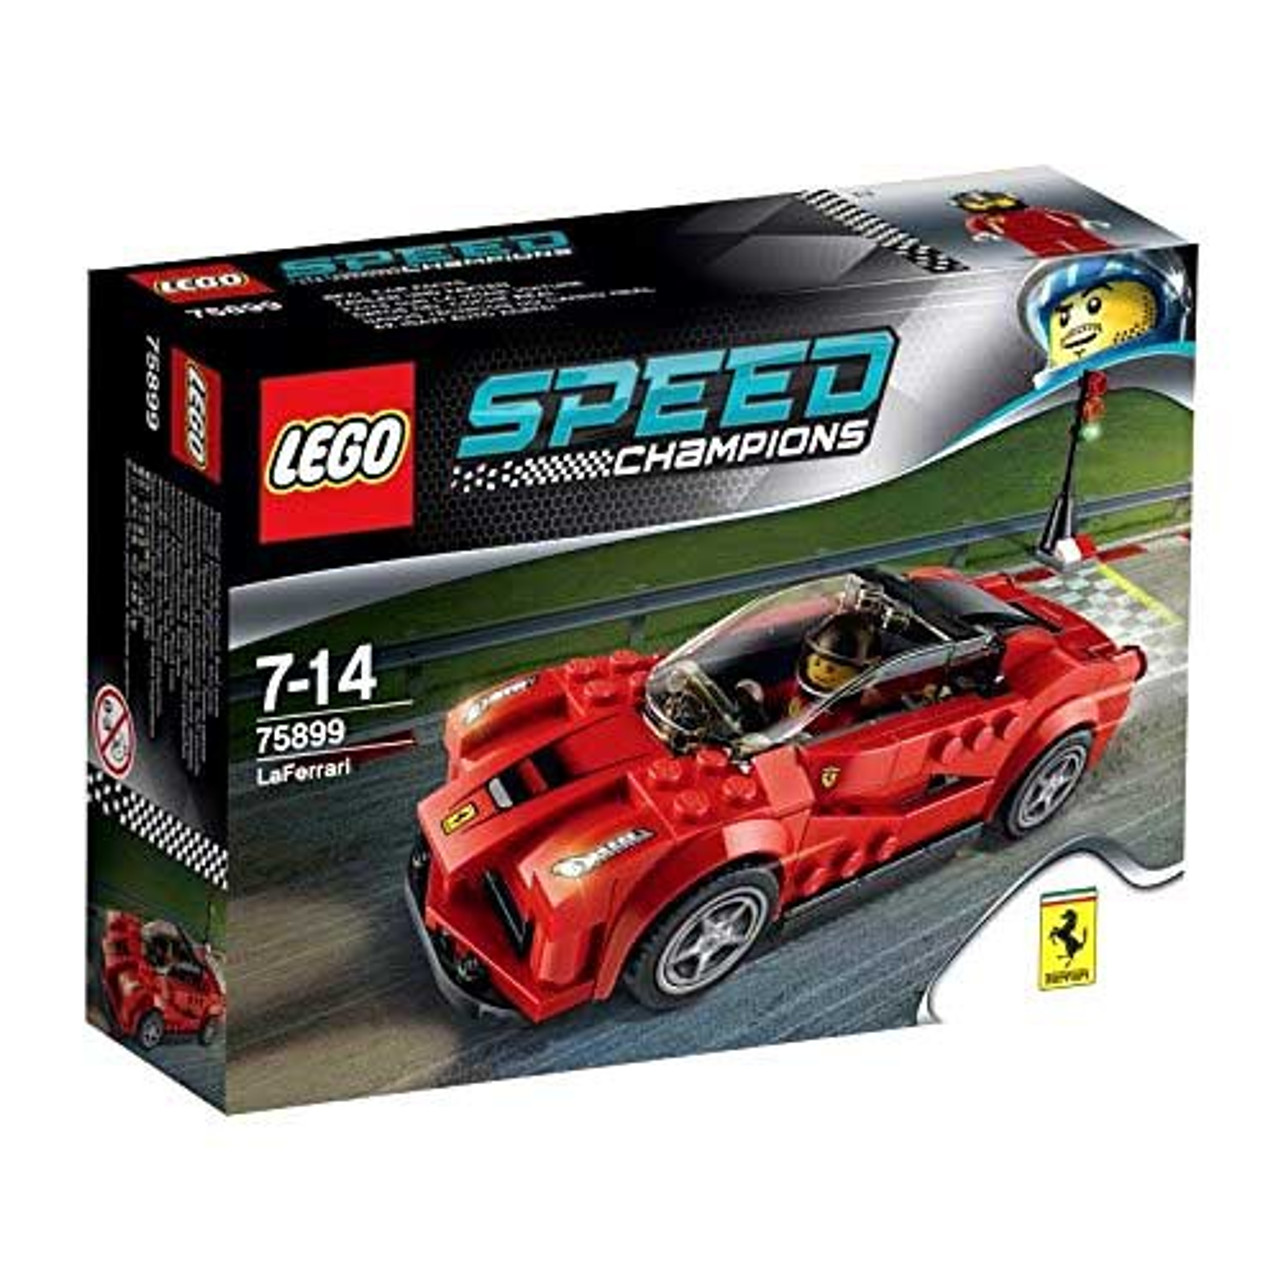 Lego Speed Champions La Ferrari Set 75899 Loose Toywiz